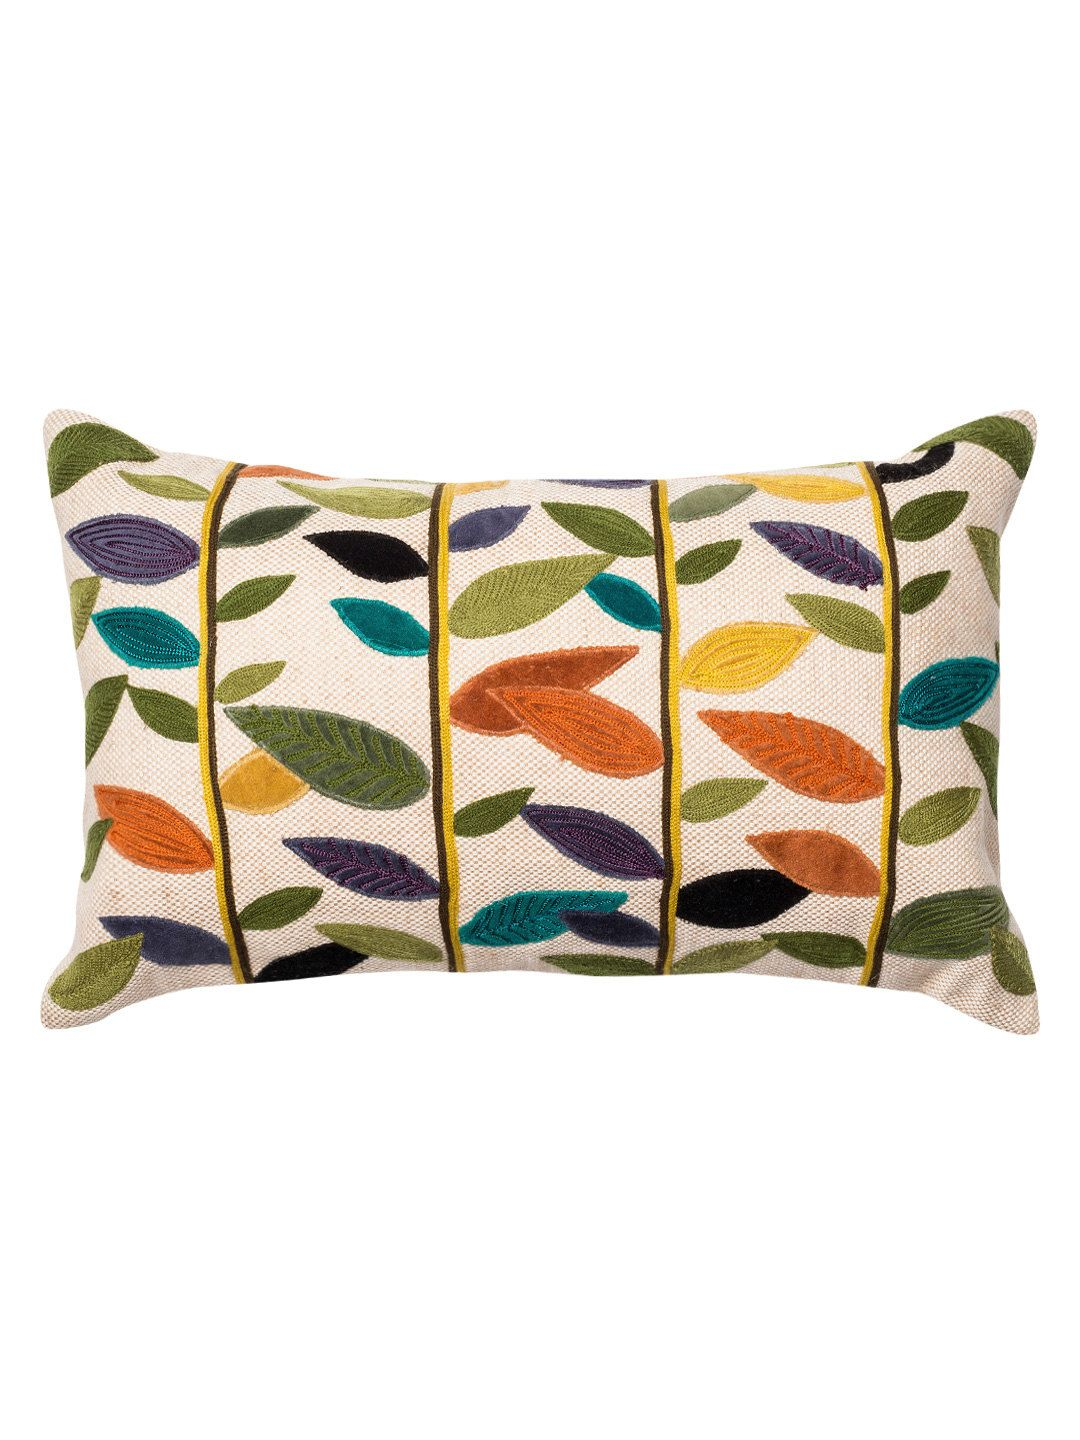 Applicade pillow by loloi pillows at gilt misc graphic design